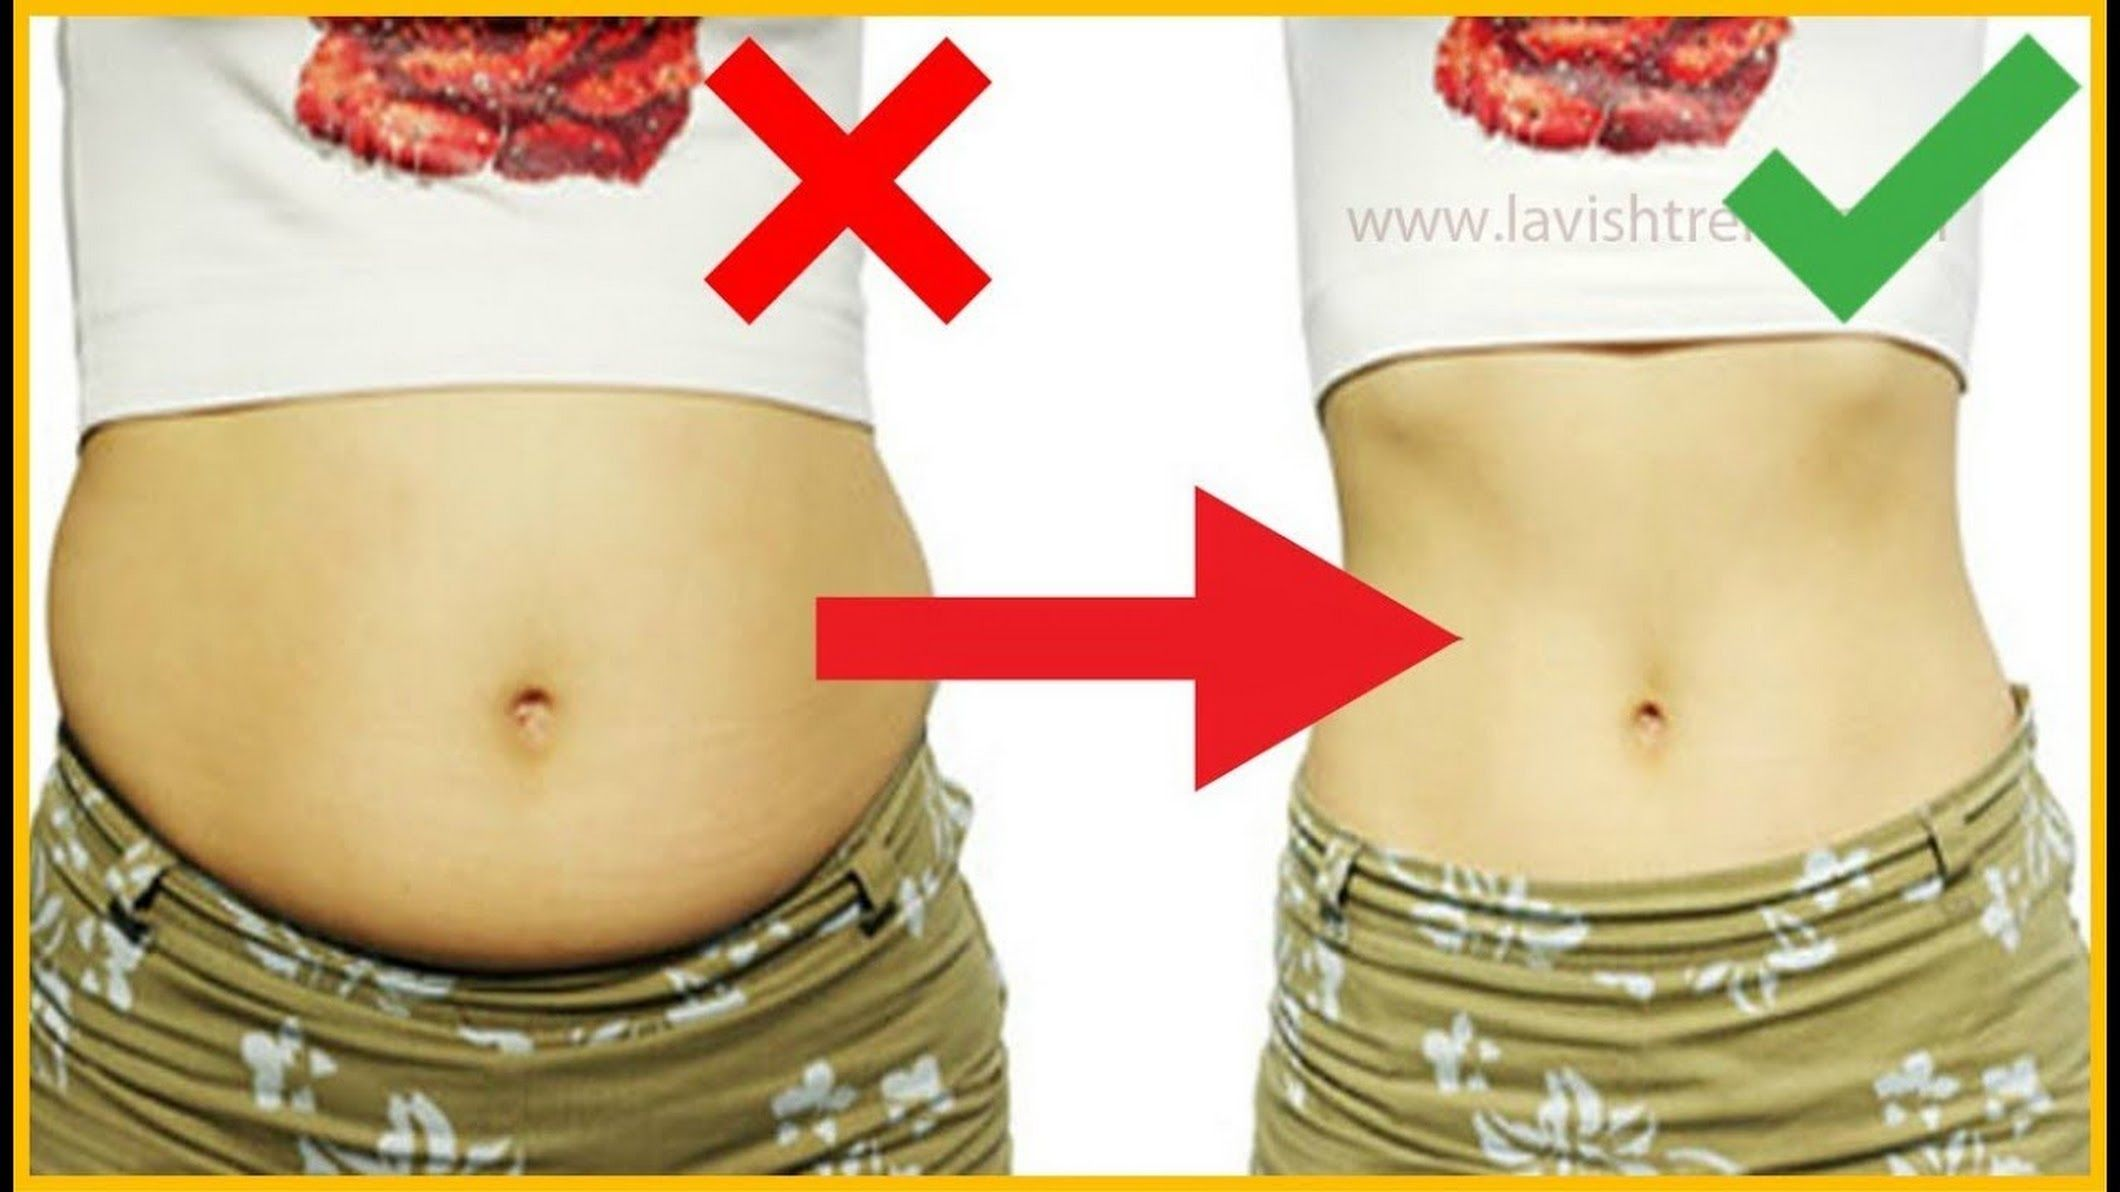 Weight loss with losartan potassium image 5